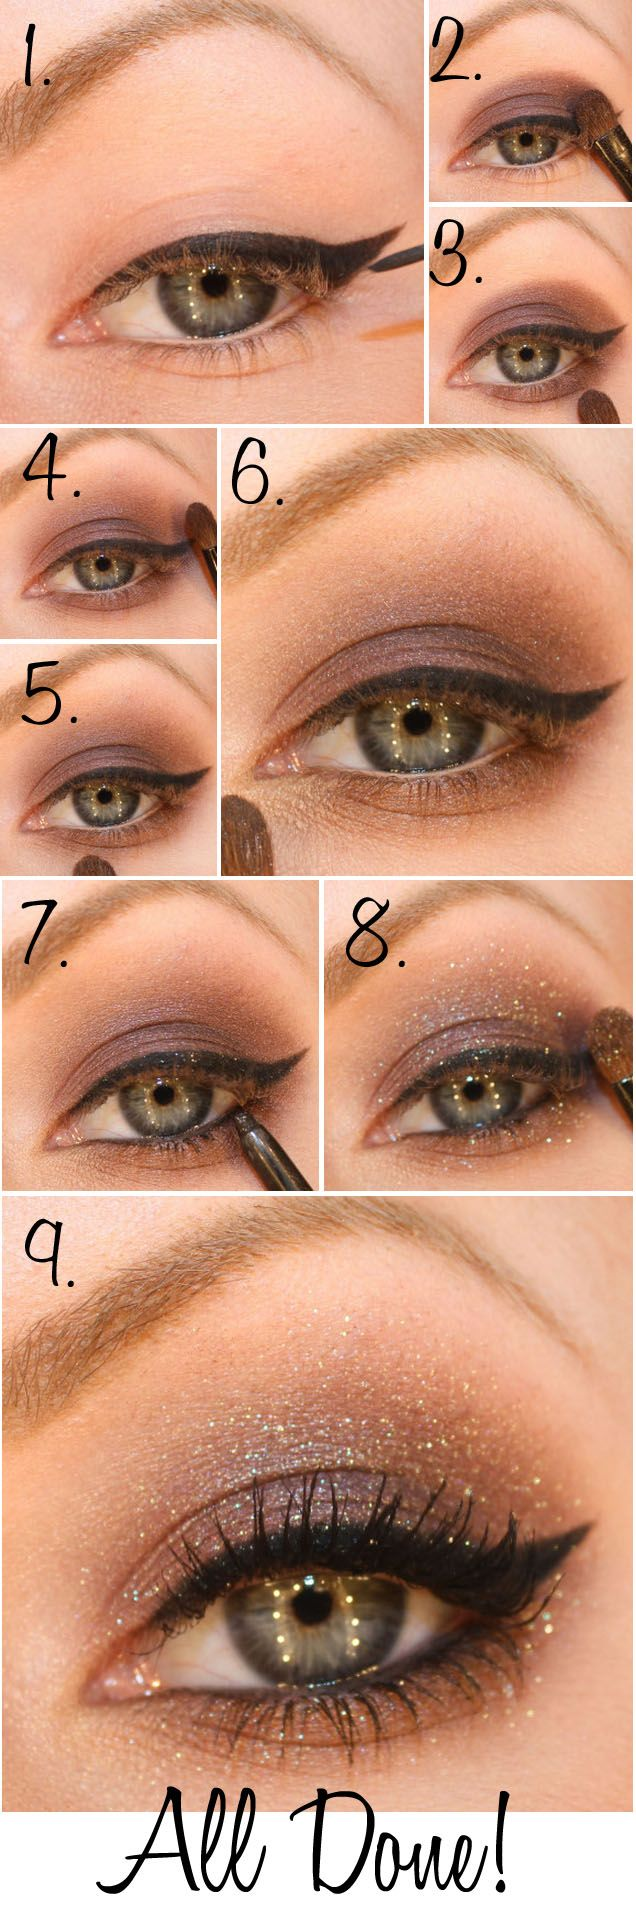 Top 10 gorgeous night eye makeup tutorials eye shadow tutorial see here the appropriate makeup for school httpmymakeupideas baditri Images